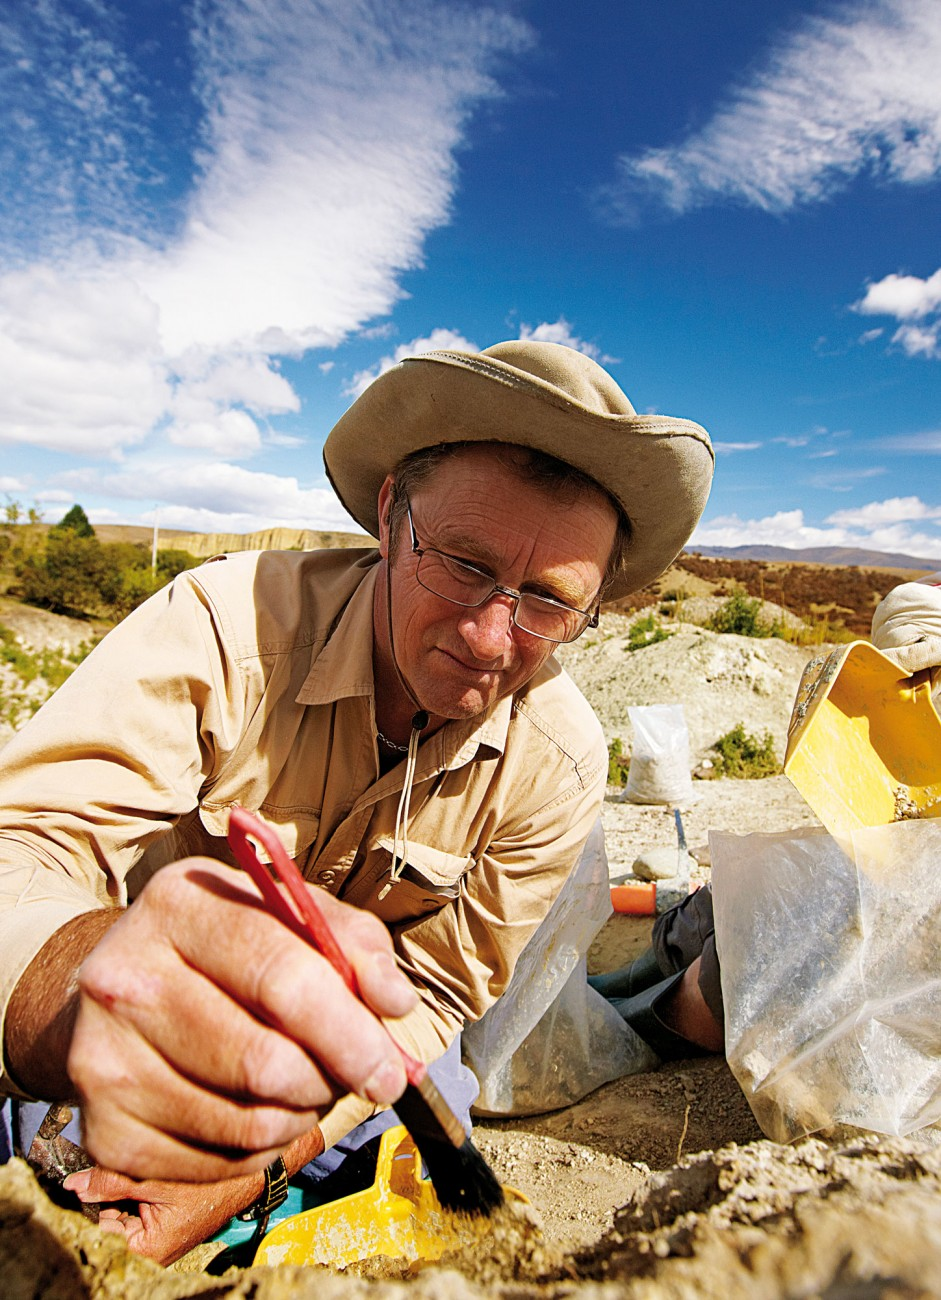 Palaeobiologist Trevor Worthy excavates fossils from a riverbank in St Bathans, Central Otago. Often metres of rock are removed to reveal a special layer of ancient sediment which is sometimes just a few centimetres thick. Tools of the trade range from the large bucket on a 10-tonne digger to fine dentistry probes repurposed for a new life scraping silt from around fossils. Once exposed, bones are carefully packaged and removed to a laboratory for preparation under a microscope—cleaning, consolidation and reassembly of the fragments.